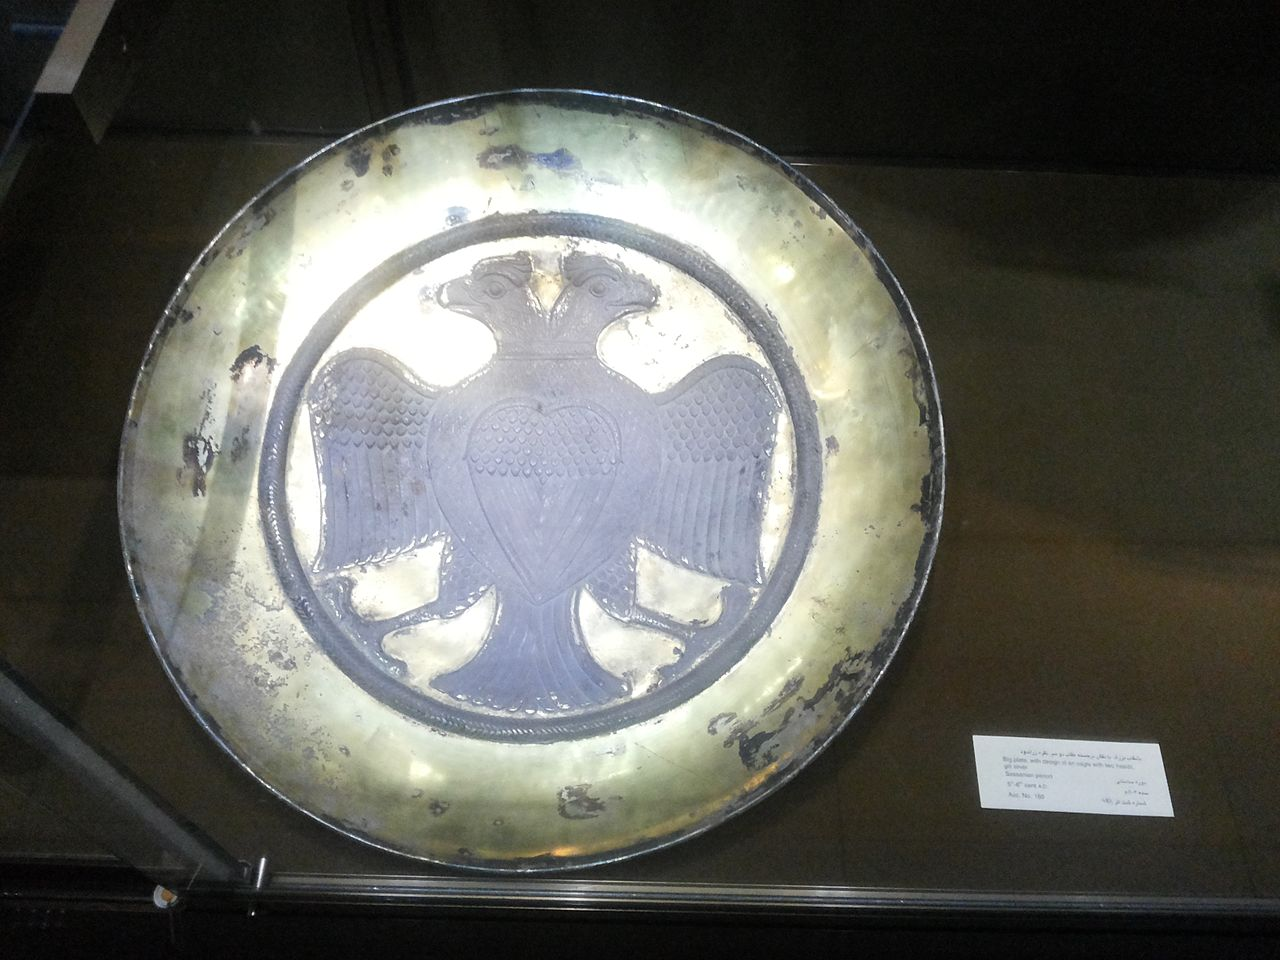 Sassanid_plate_of_eagle_with_two_heads.jpg